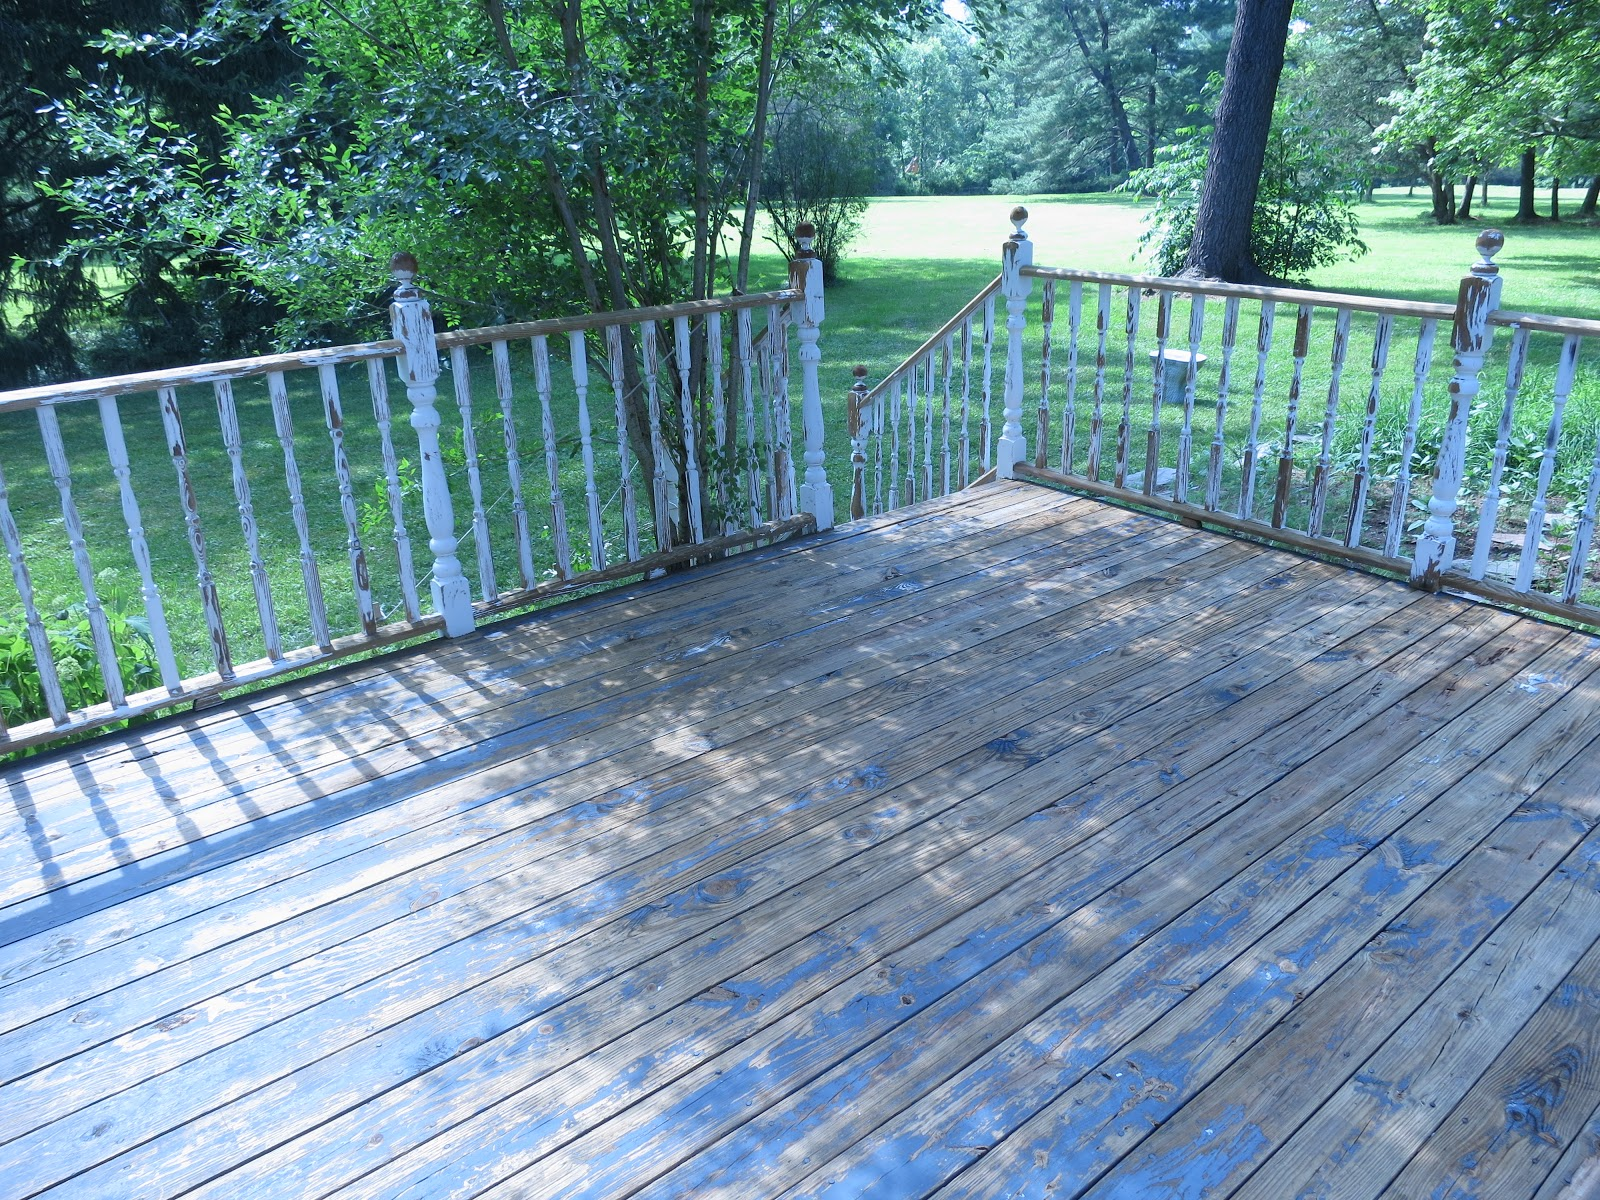 An Old Farm Power Washing The Deck